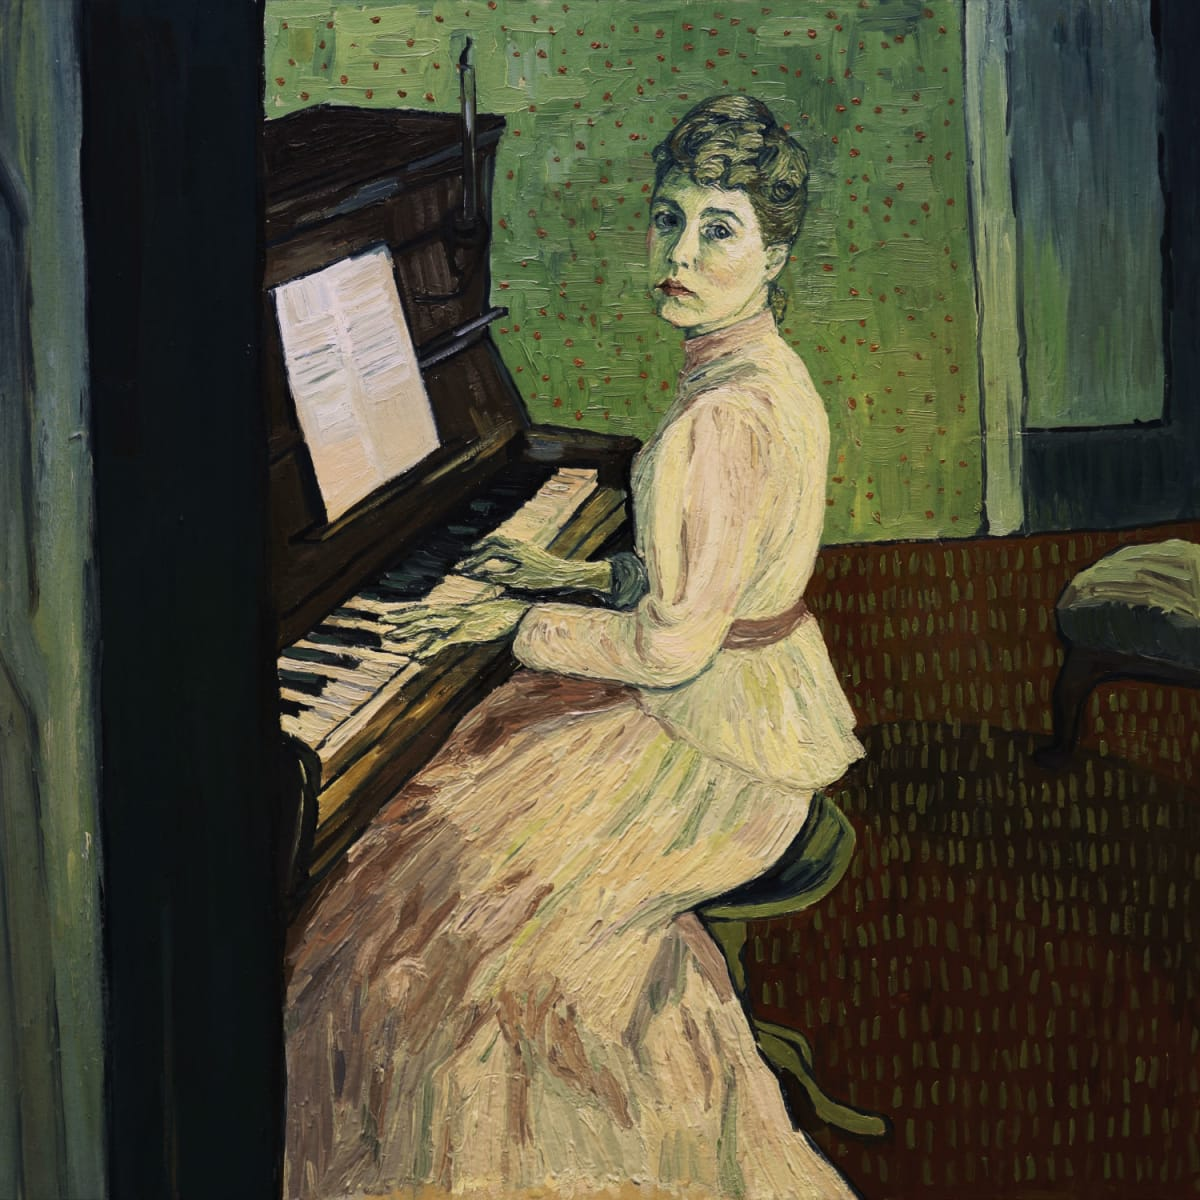 Saoirse Ronan as Maguerite Gachet in Loving Vincent